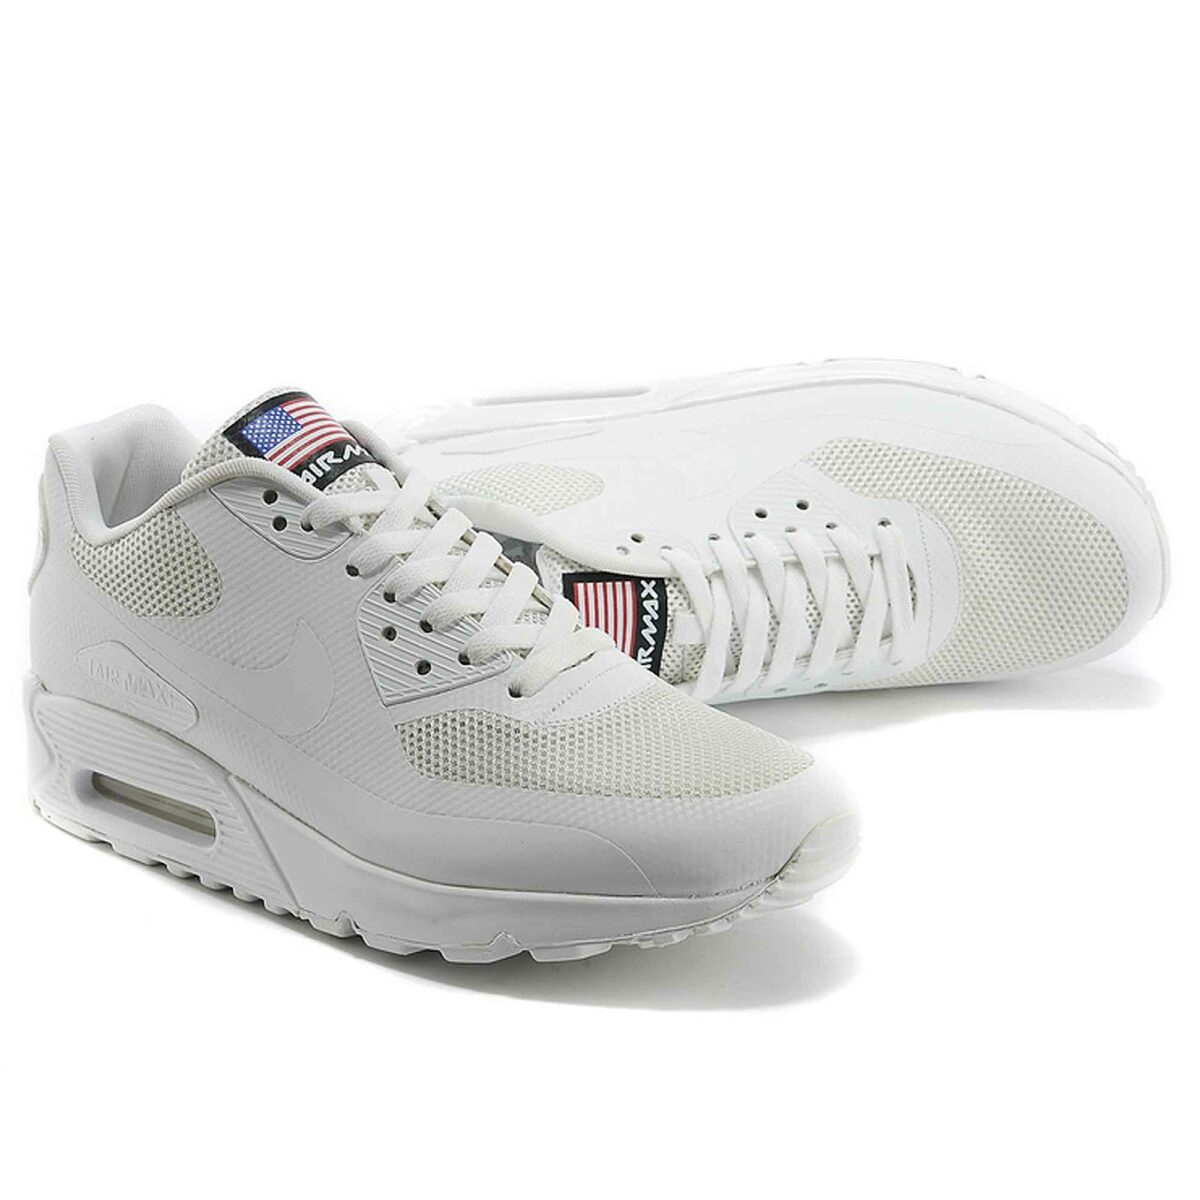 Купить Nike Air Max 90 Hyperfuse Independence Day 2013 White